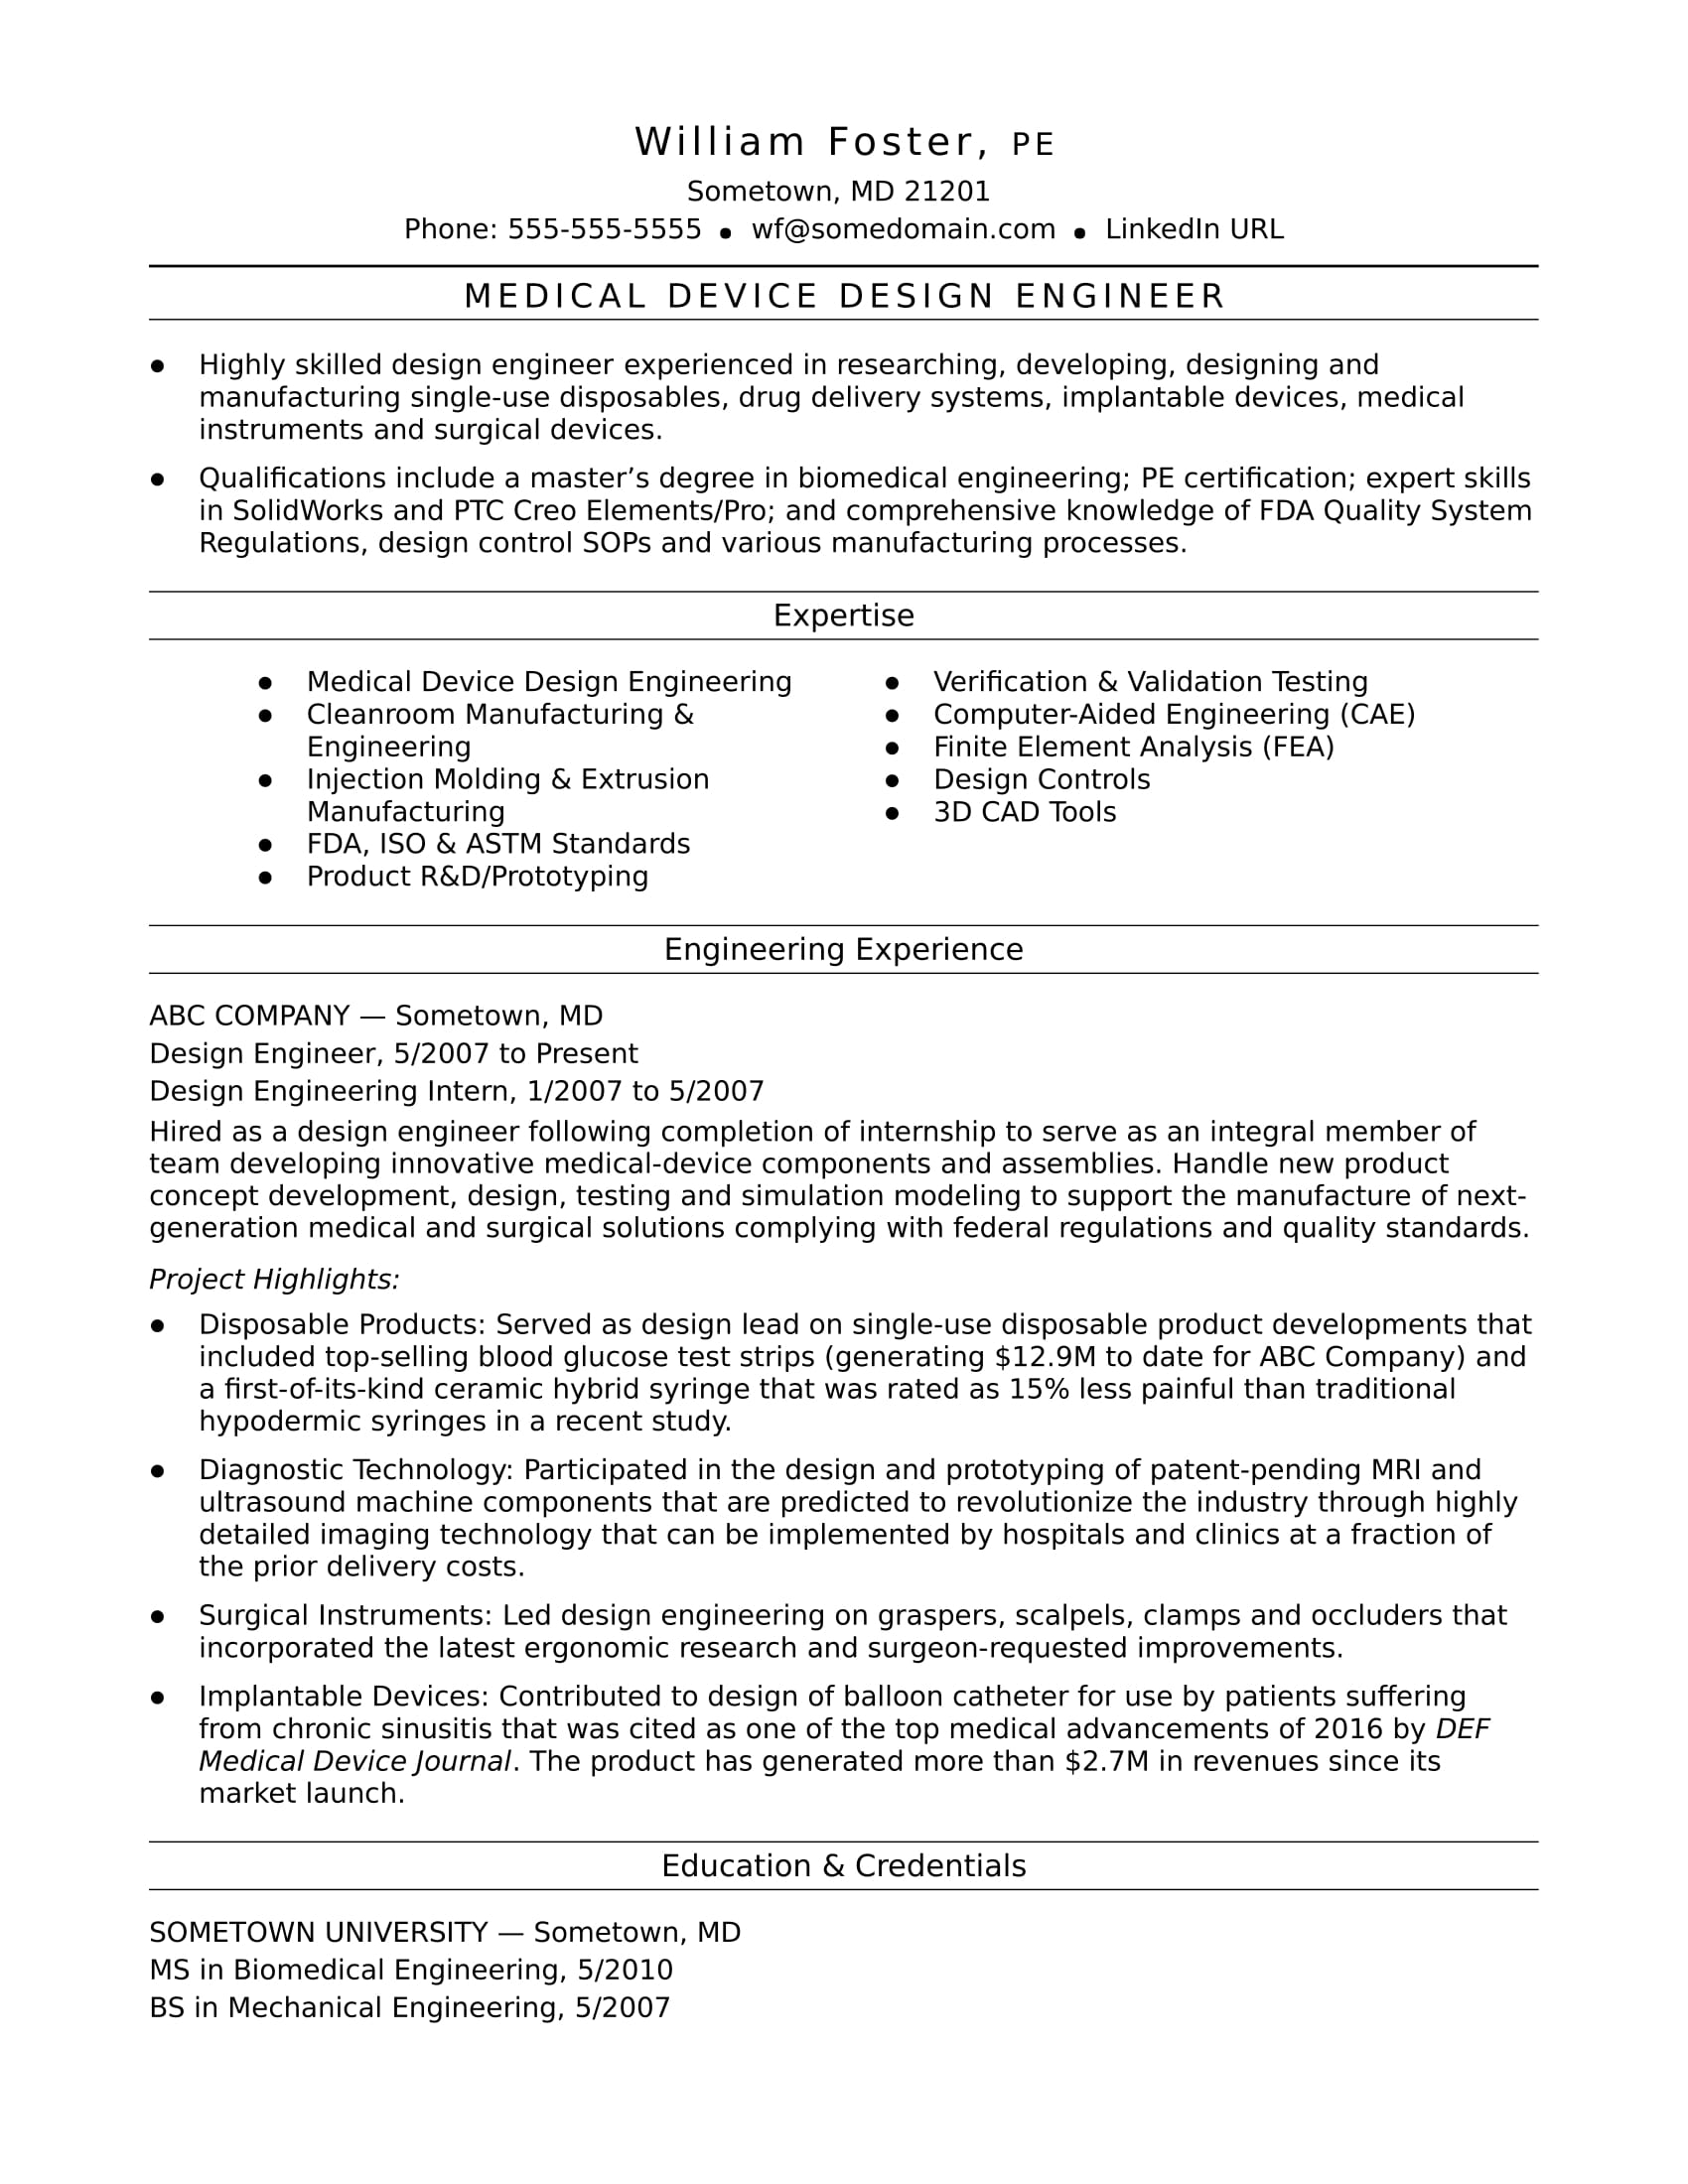 sample resume for a midlevel design engineer - Design Engineer Resume